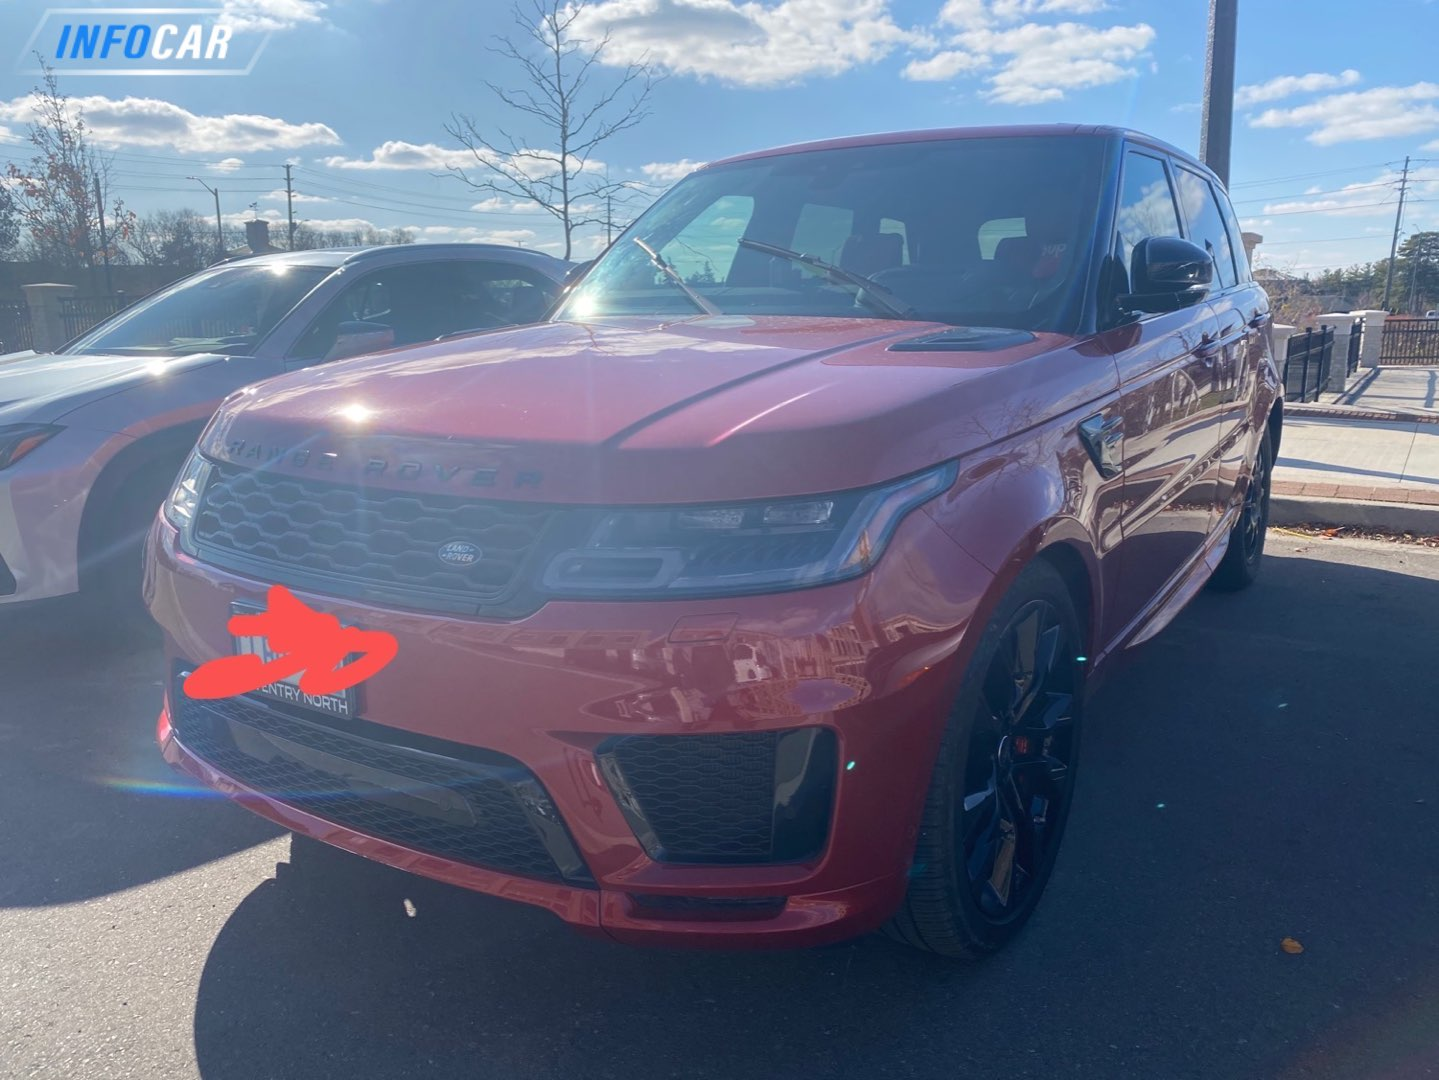 2020 Land Rover Range Rover Sport  - INFOCAR - Toronto's Most Comprehensive New and Used Auto Trading Platform